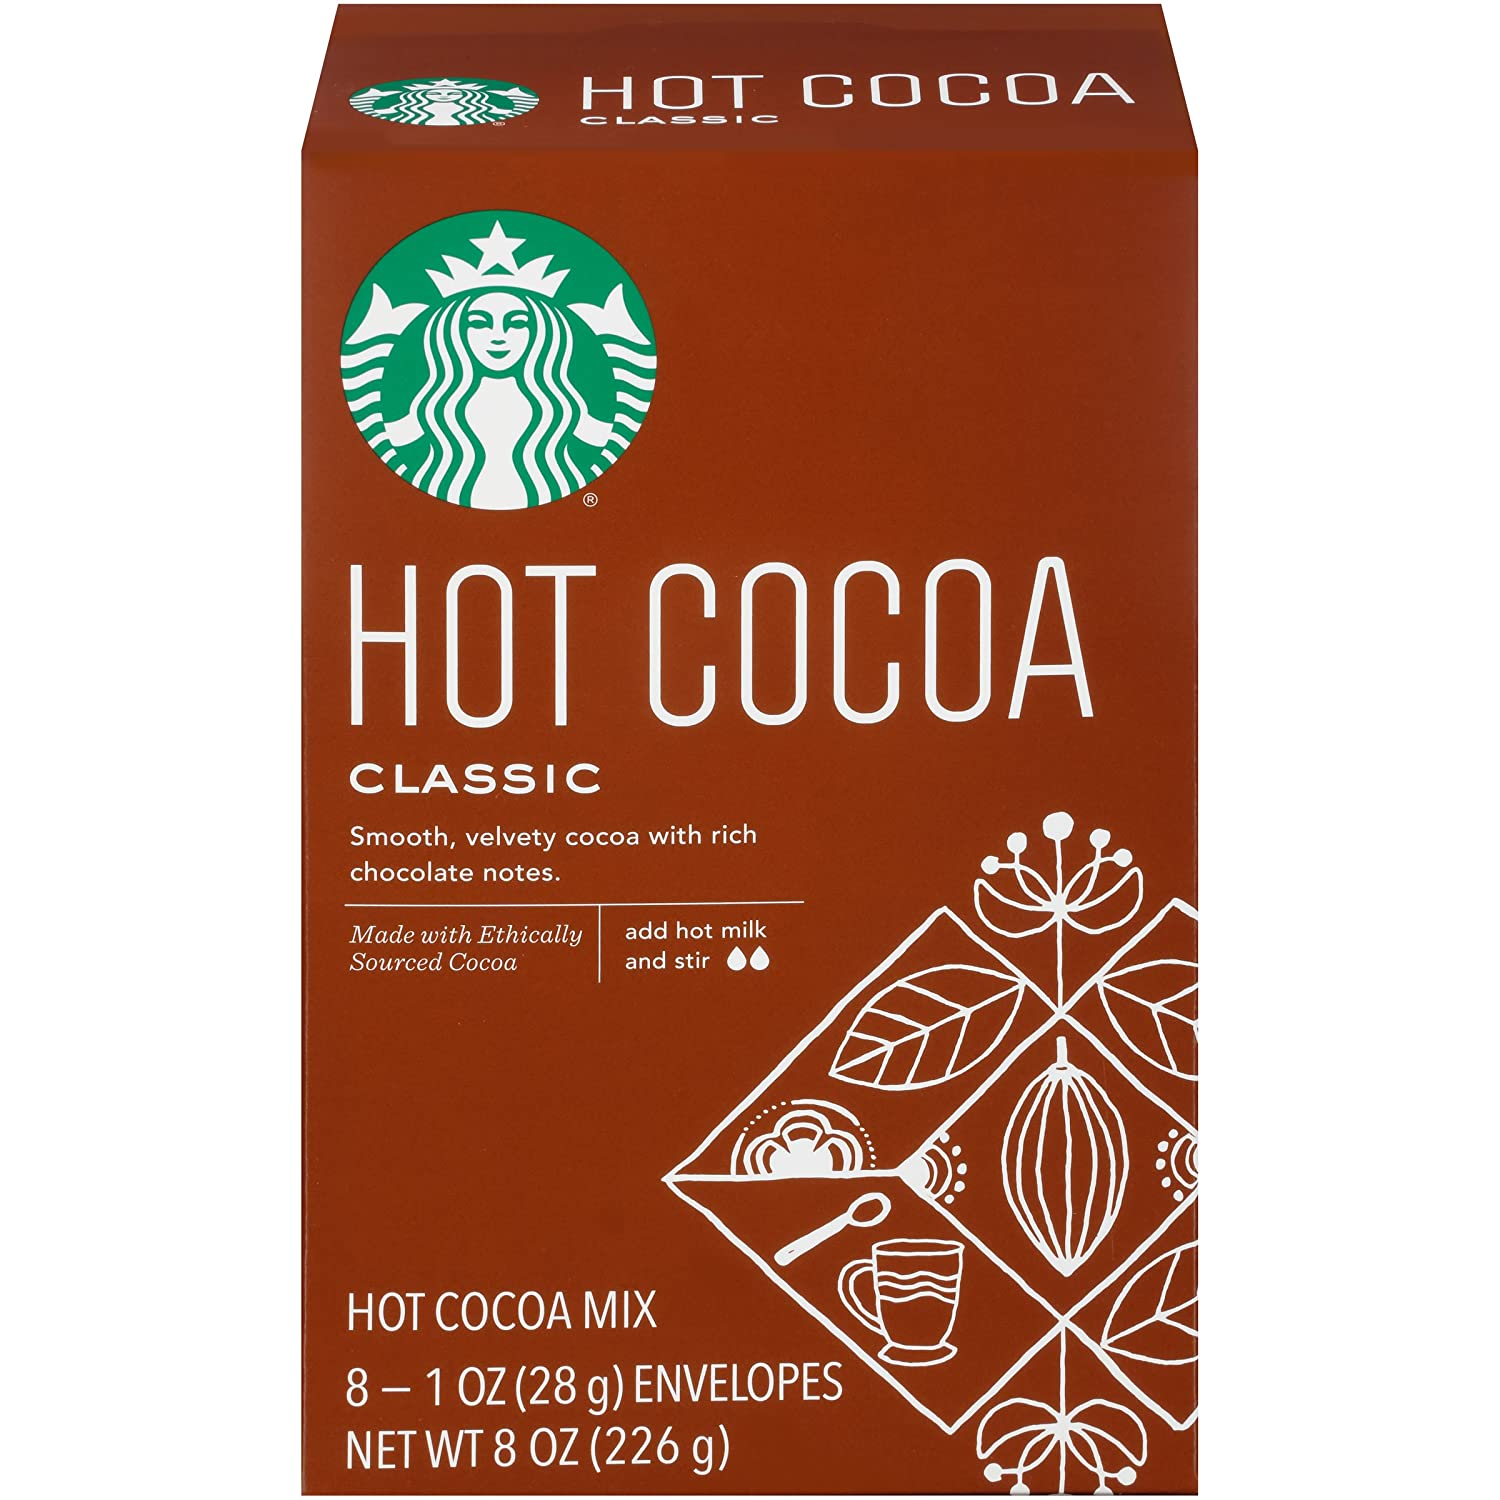 Starbucks 1oz Packets, 8-count, Classic Hot Cocoa Mix, Pack of 3